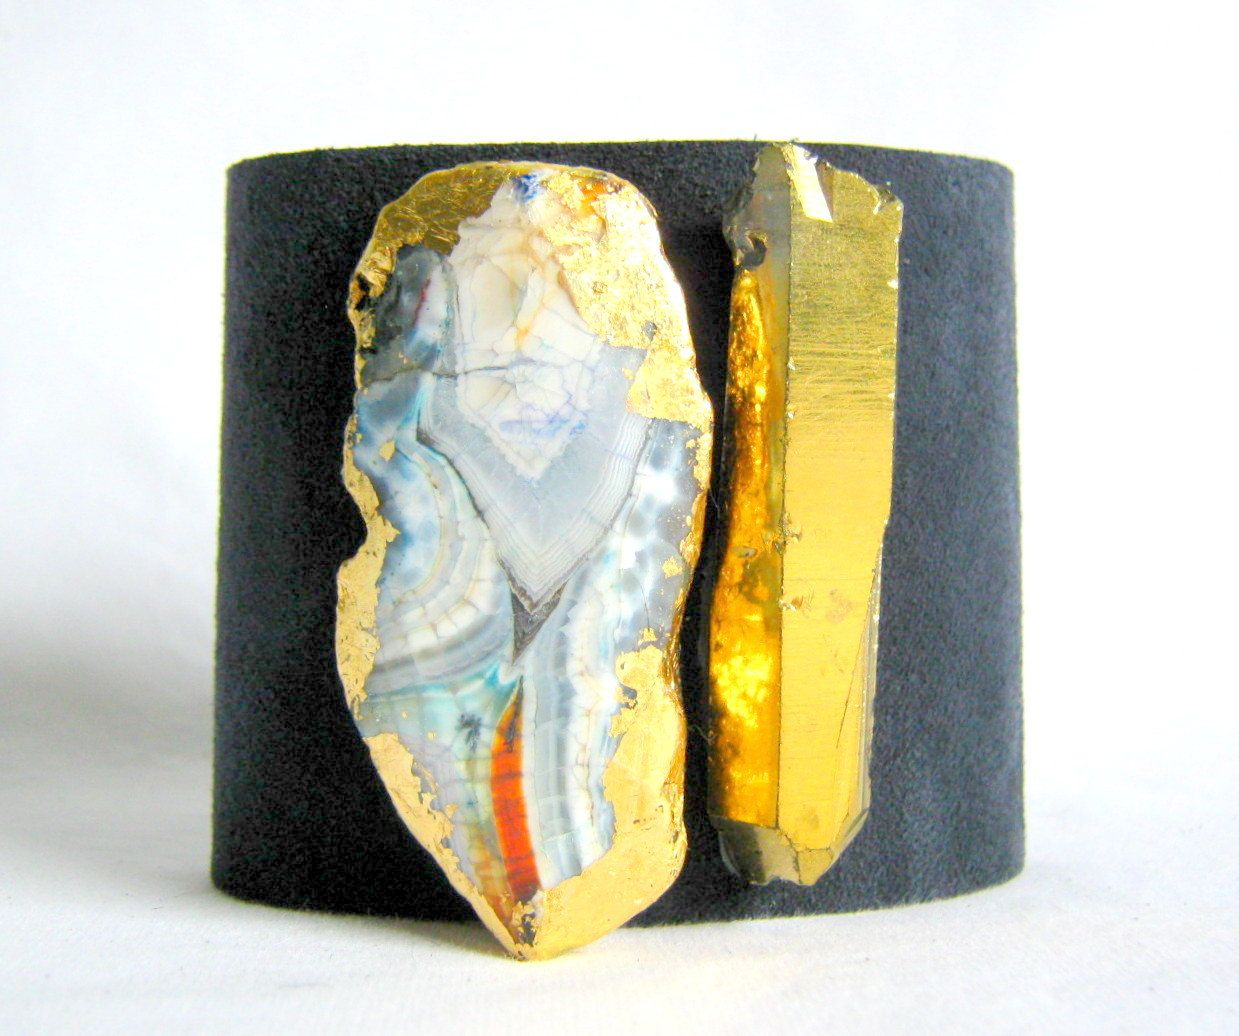 women's suede cuff bracelet in monaco blue with gilded agate and gold crystal quartz point- size 1. $50.00, via Etsy.